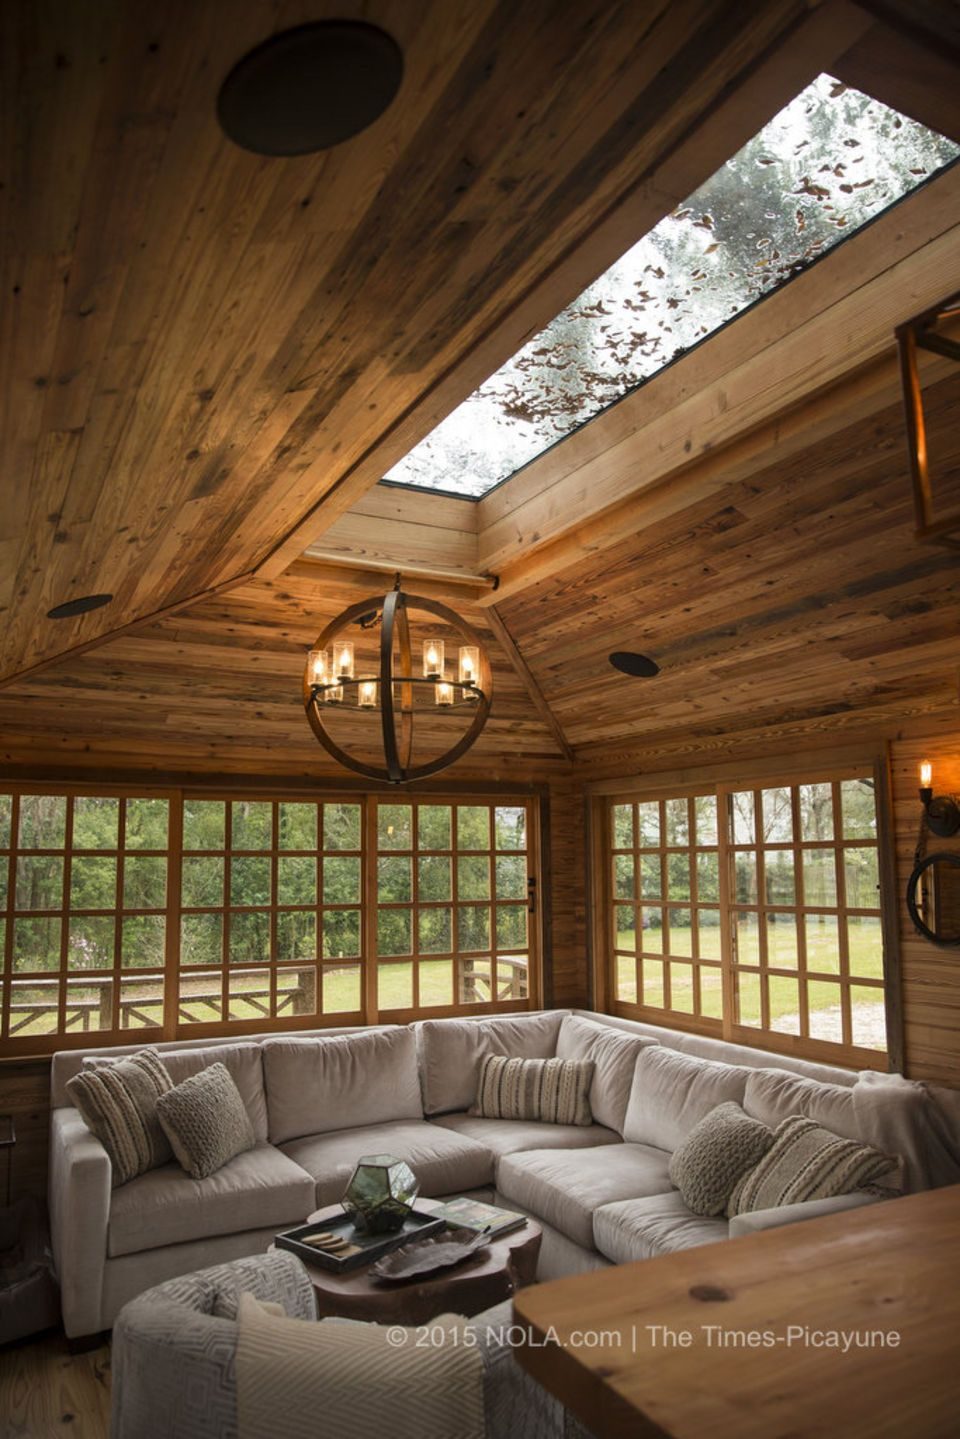 The main living room area with a view of the skylight in the treehouse that Raising Cane founder and CEO Todd Graves and his wife, Gwen, had built behind their Baton Rouge home. The house was photographed on Thursday, March 5, 2015. (Photo by Chris Granger, Nola.com | The Times-Picayune)